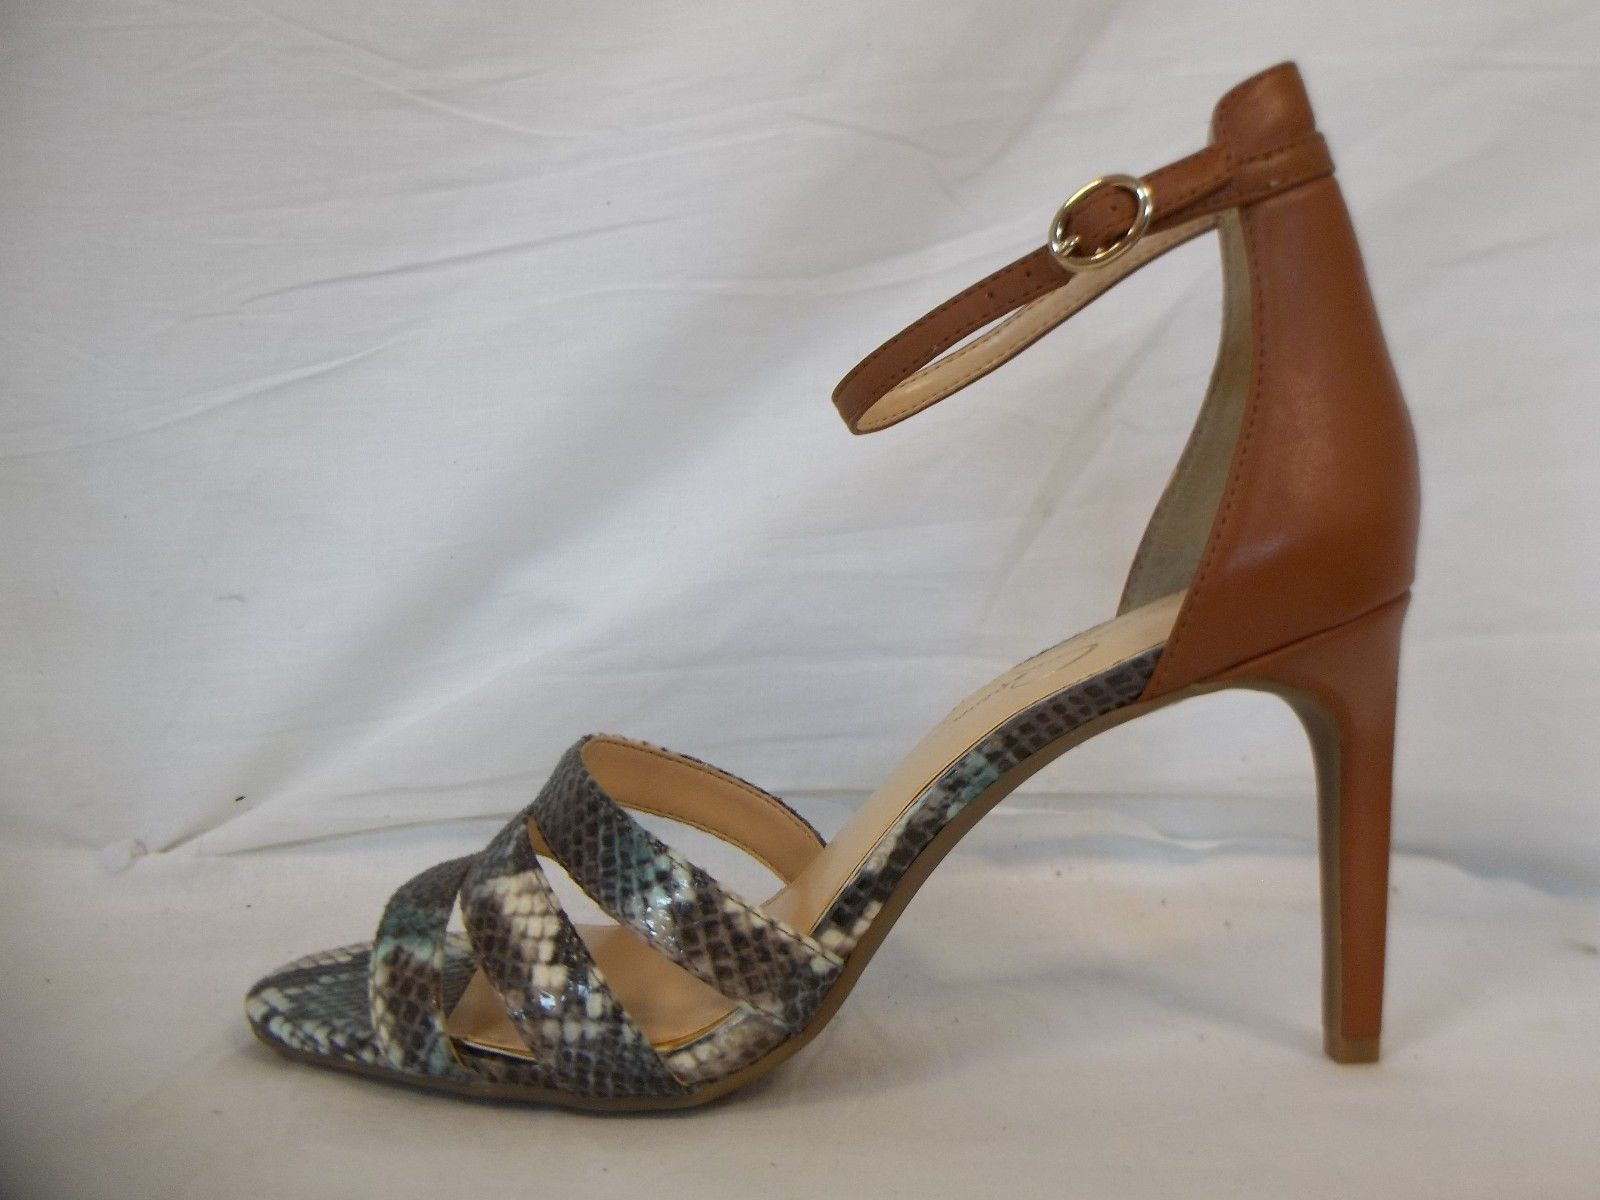 Jessica Simpson 7.5 M Maselli Multi Color Open Toe Heels New Womens Shoes NWOB image 3